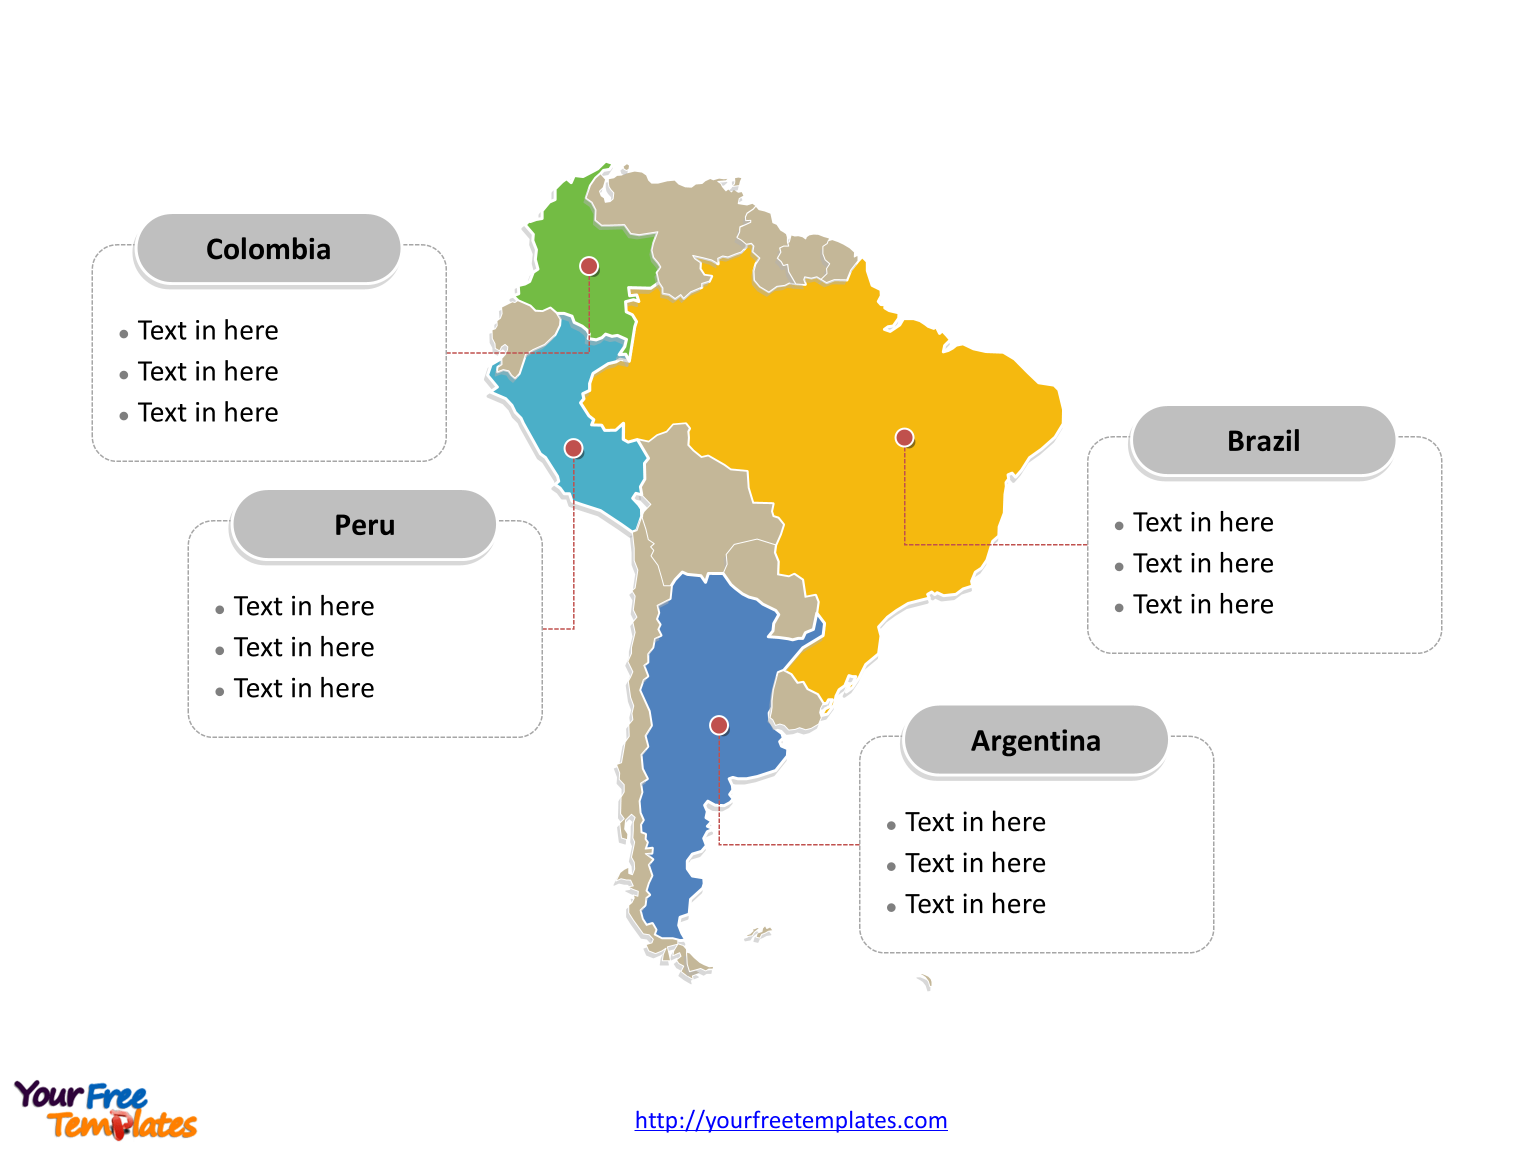 South America map free templates - Free PowerPoint Templates